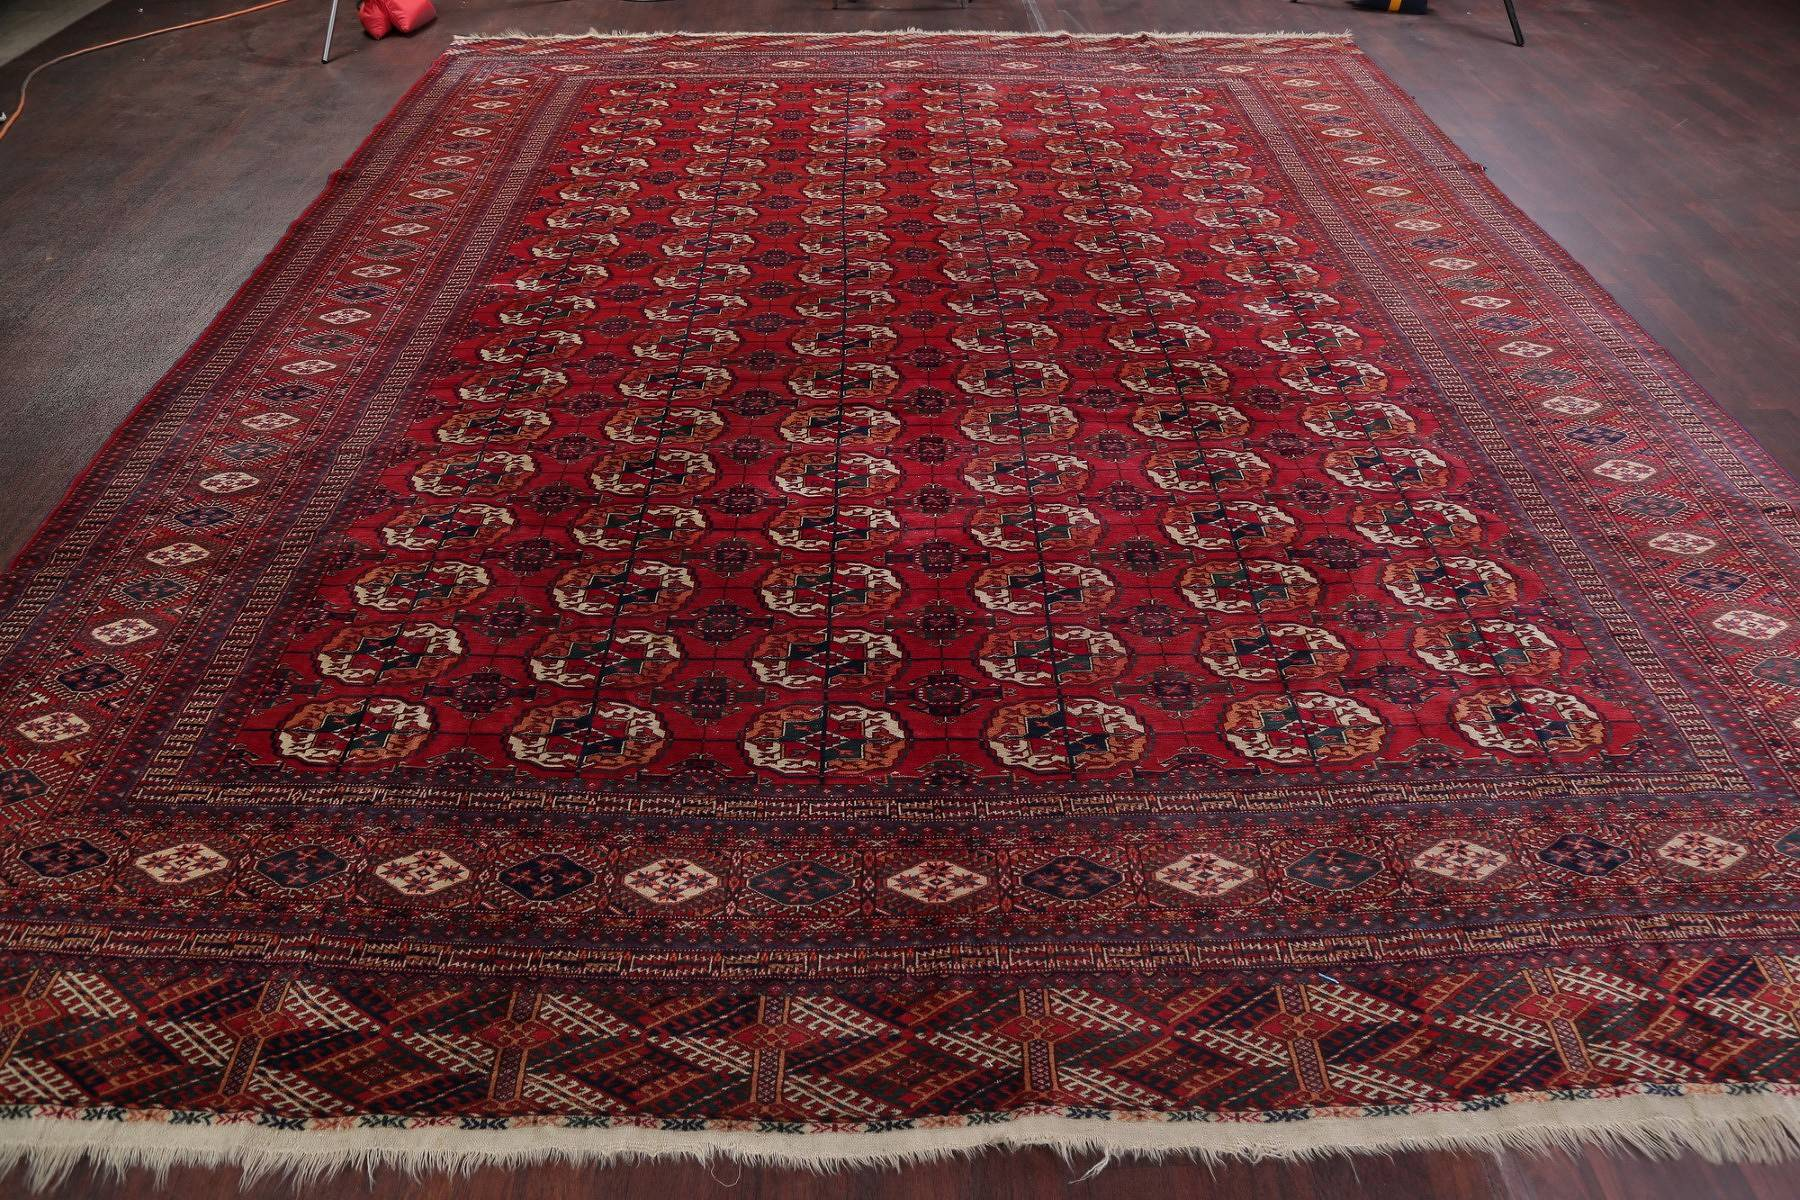 Vegetable Dye Red Kazak Russian Oriental Hand-Knotted Area Rug Wool 11x13